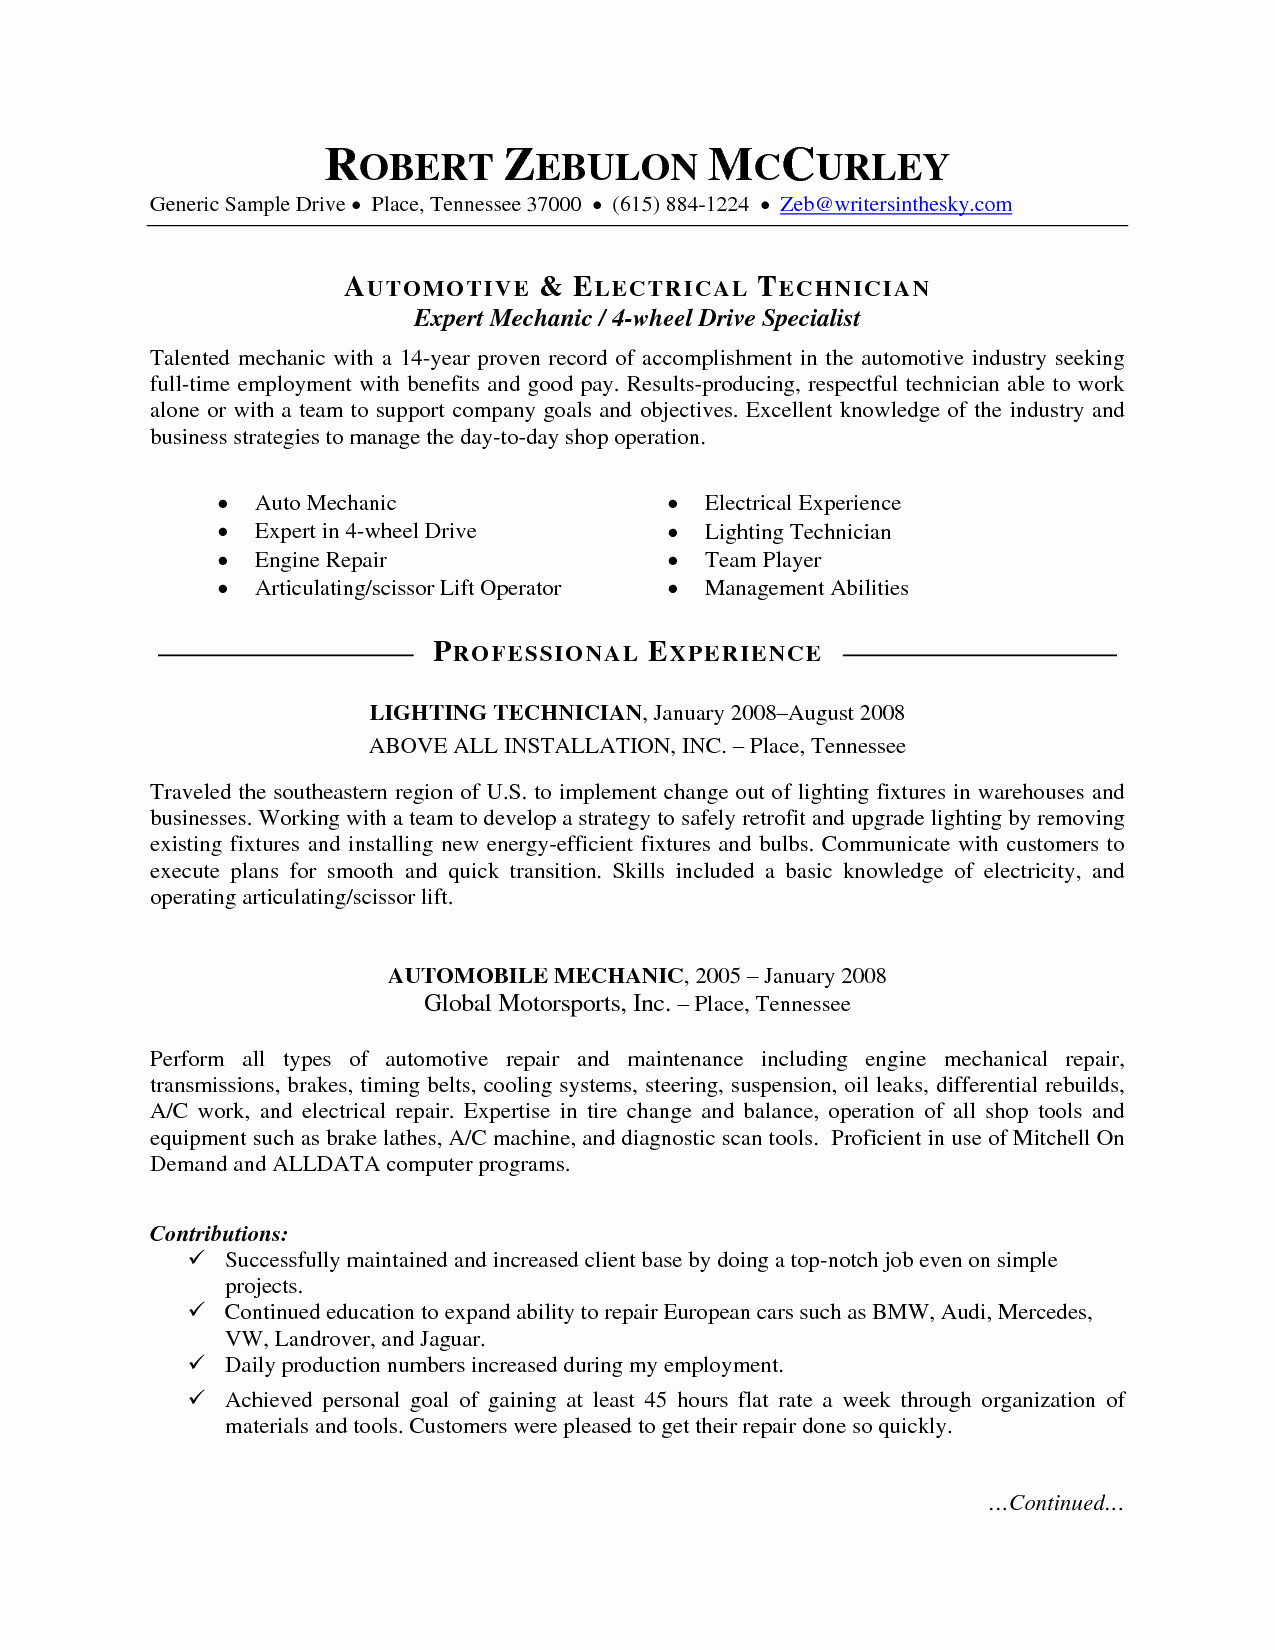 bmw technician resume example-Automotive Technician Cv Luxury Cover Letter for Maintenance Technician New Pharmacy Tech Resume 12-a